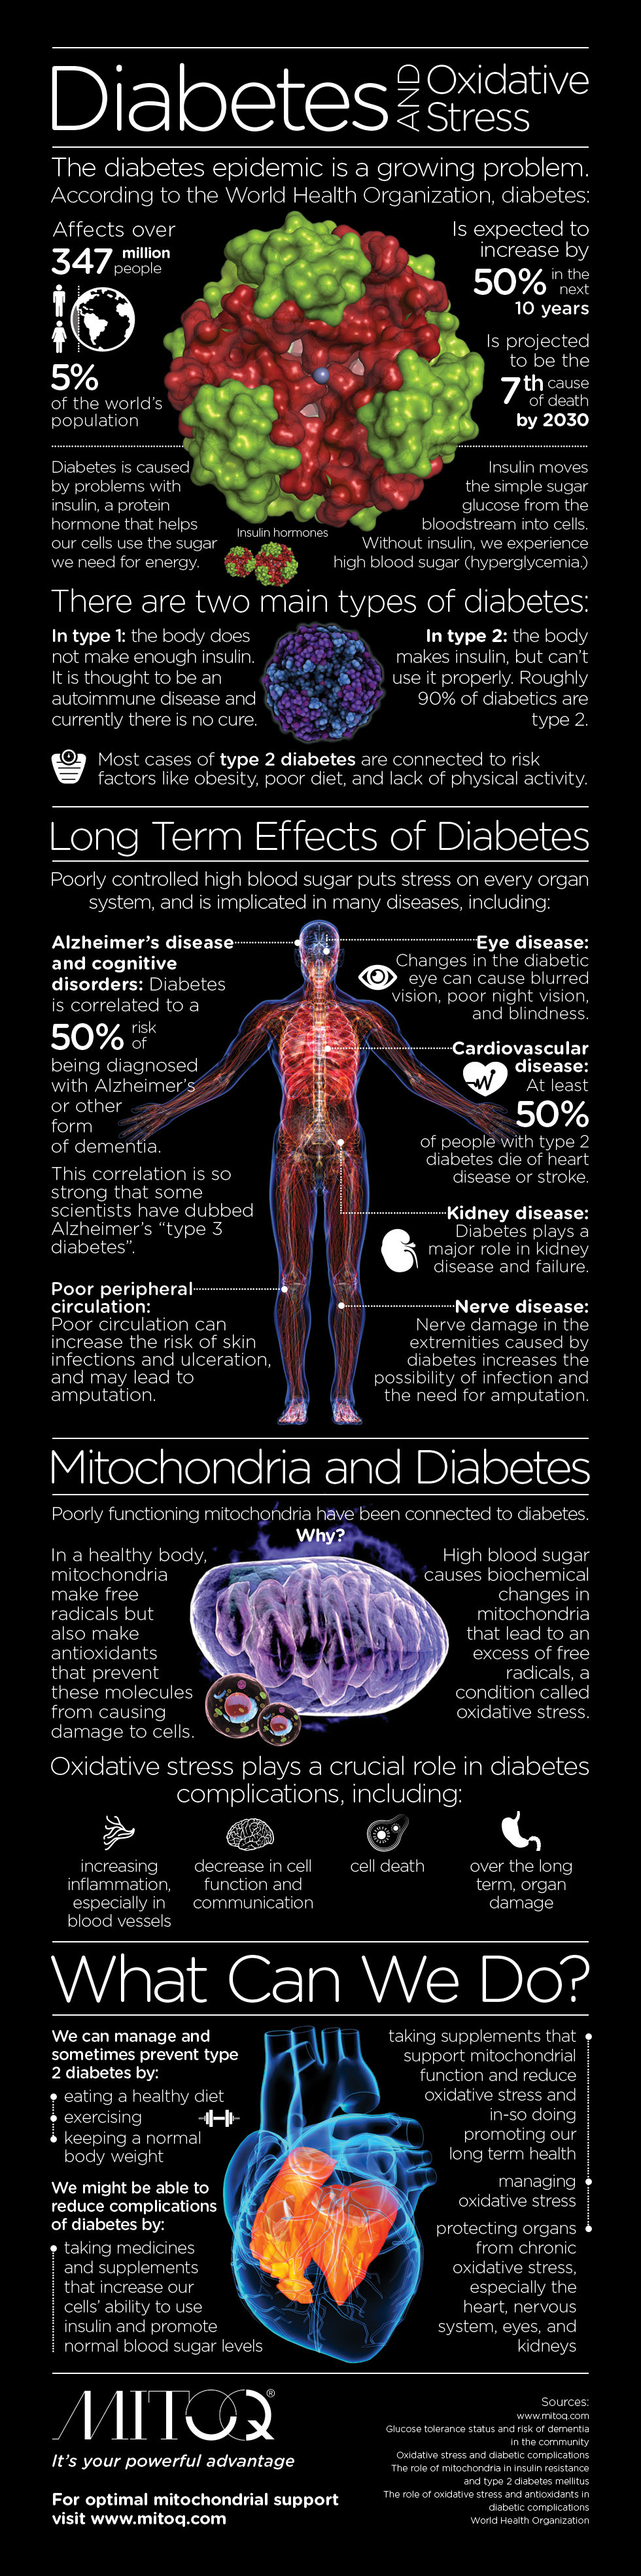 Infographic: Diabetes and Oxidative Stress #infographic